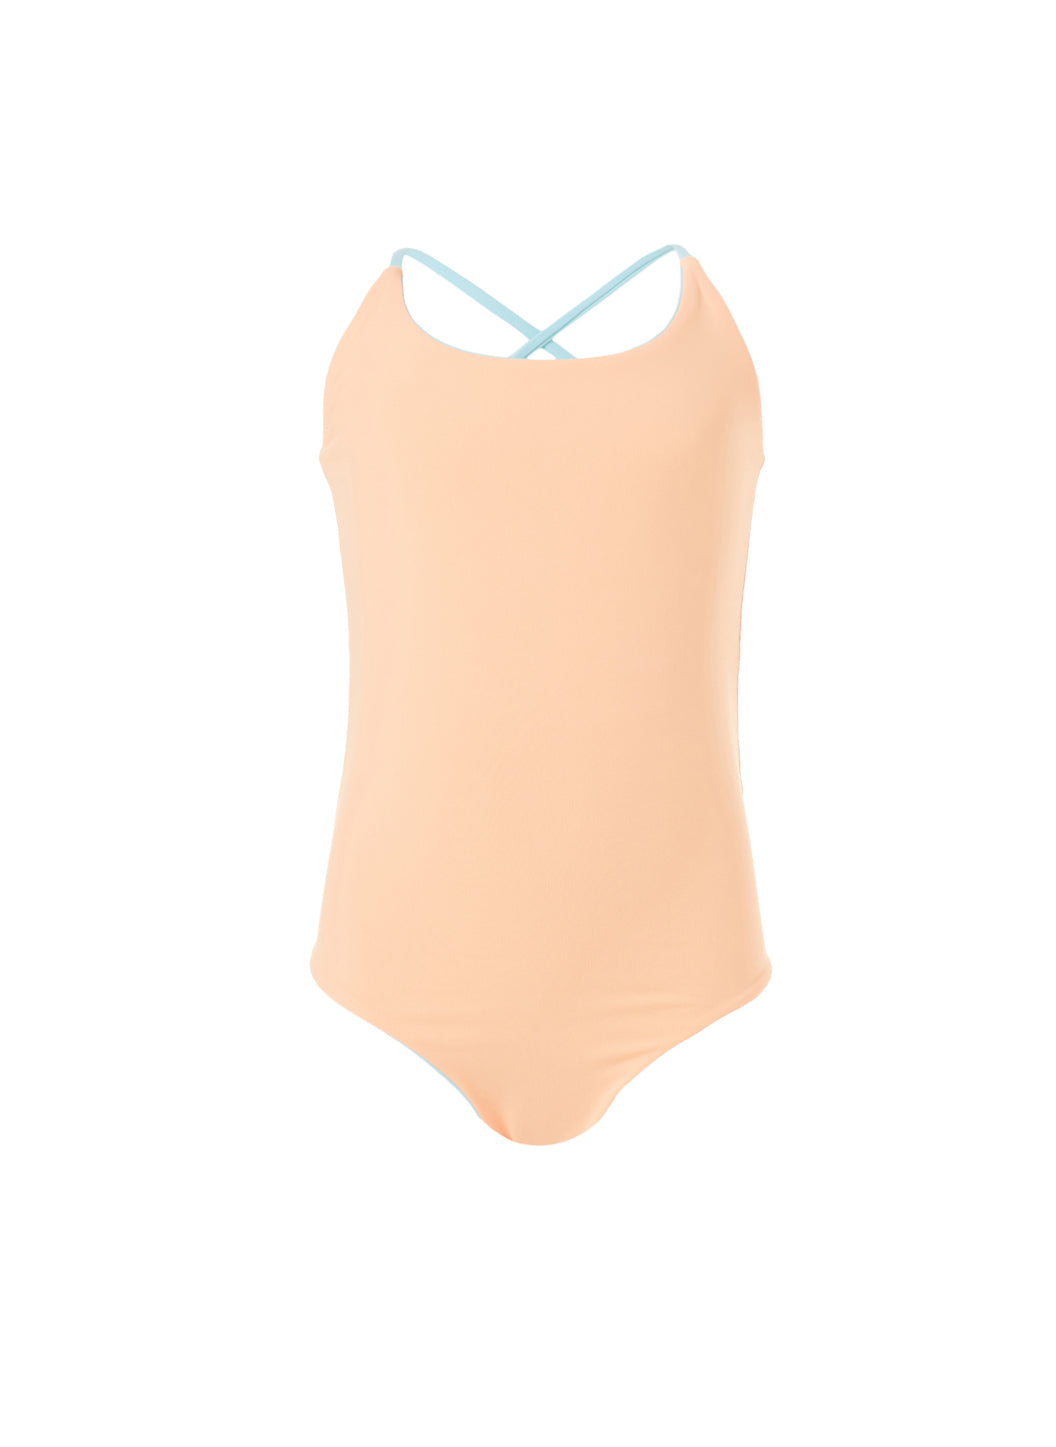 Baby Vicky Sky/Mango Cross-Back One Piece Swimsuit - Melissa Odabash Kids Swimsuits